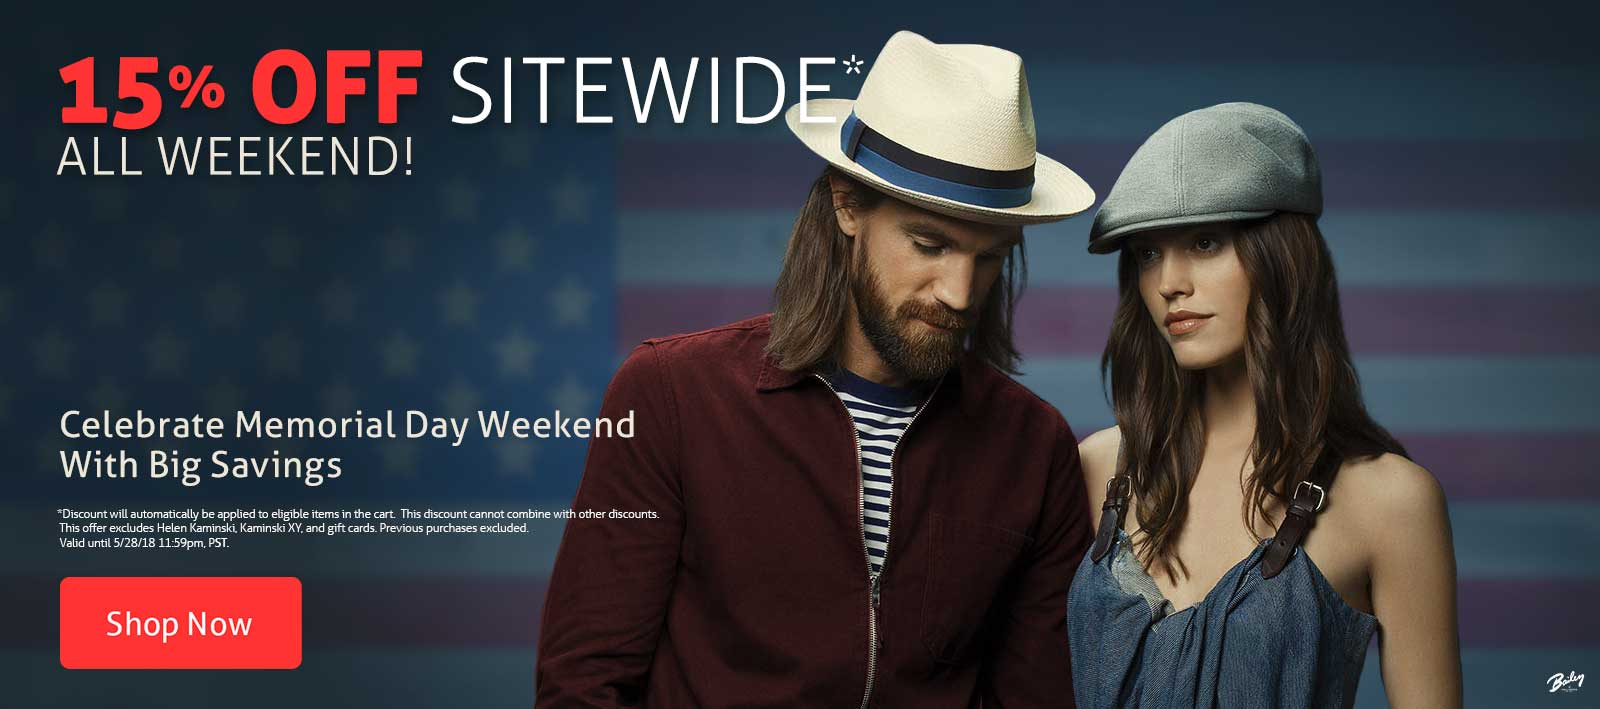 15% Off Sitewide* Celebrate Memorial Day Weekend with Big Savings